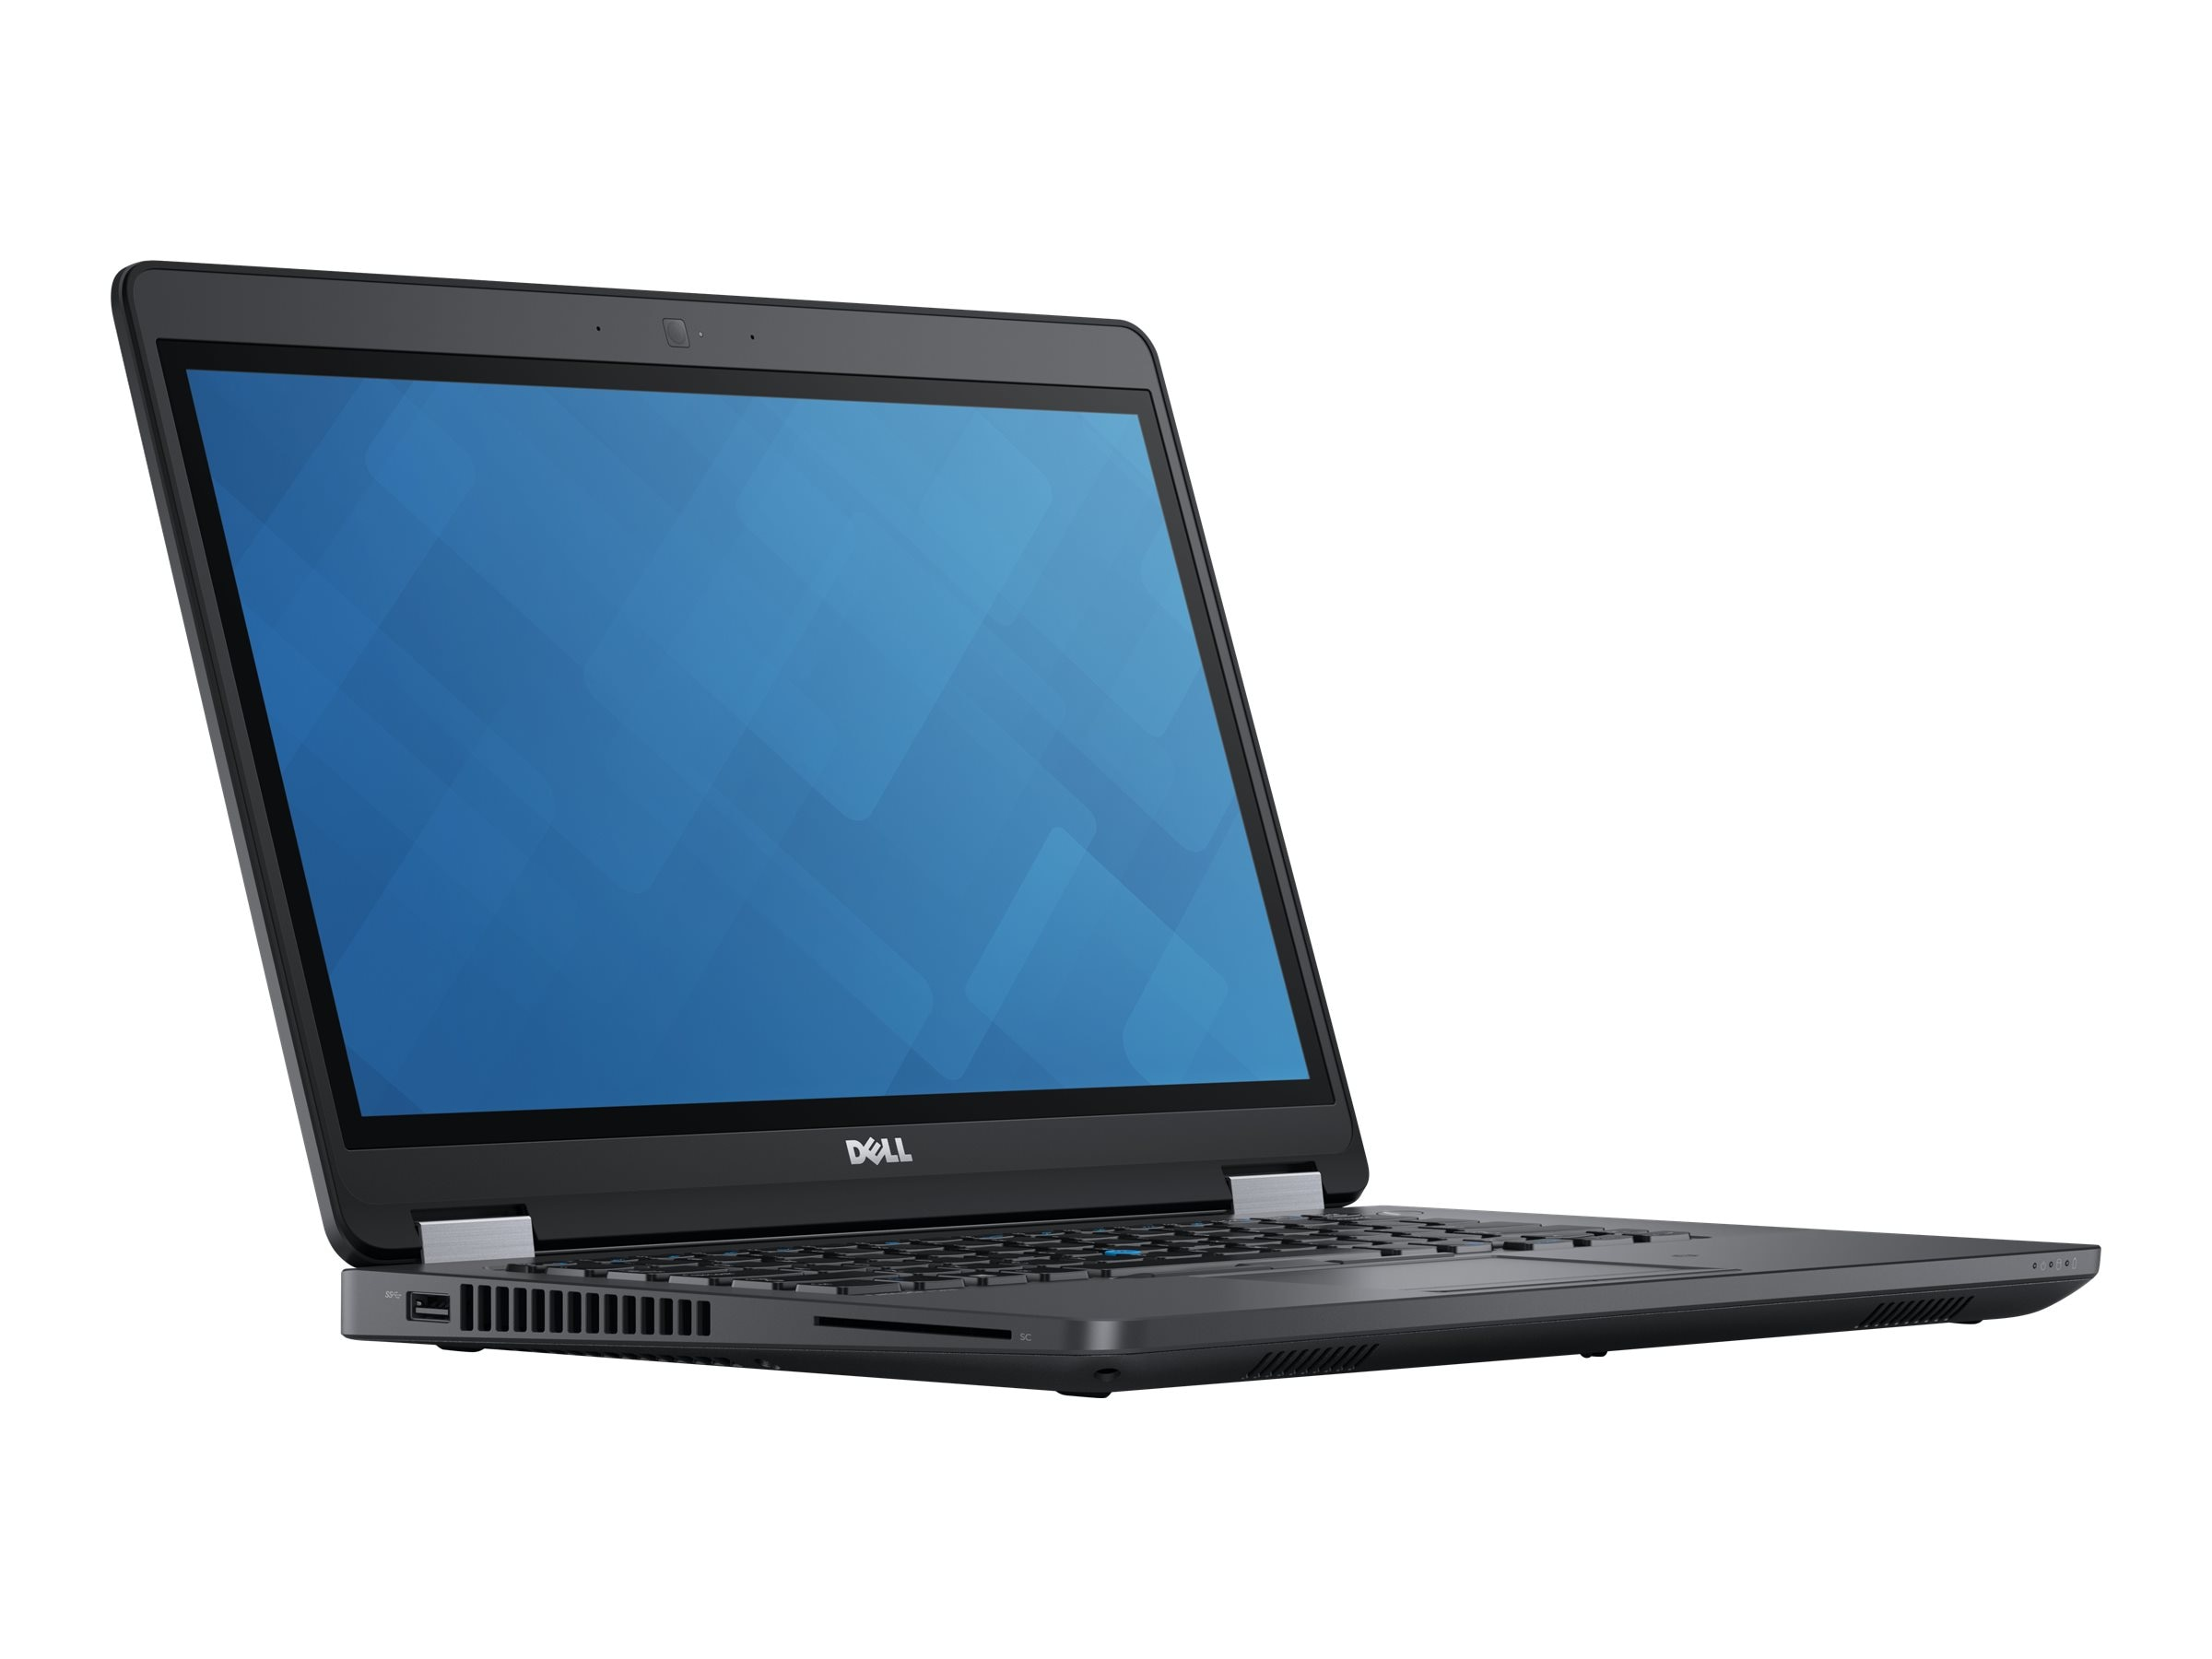 Dell Latitude E5470 Core i7-6600U 2.6GHz 8GB 500GB ac BT WC 4C 14 FHD W7P64-W10P, 9PNYD